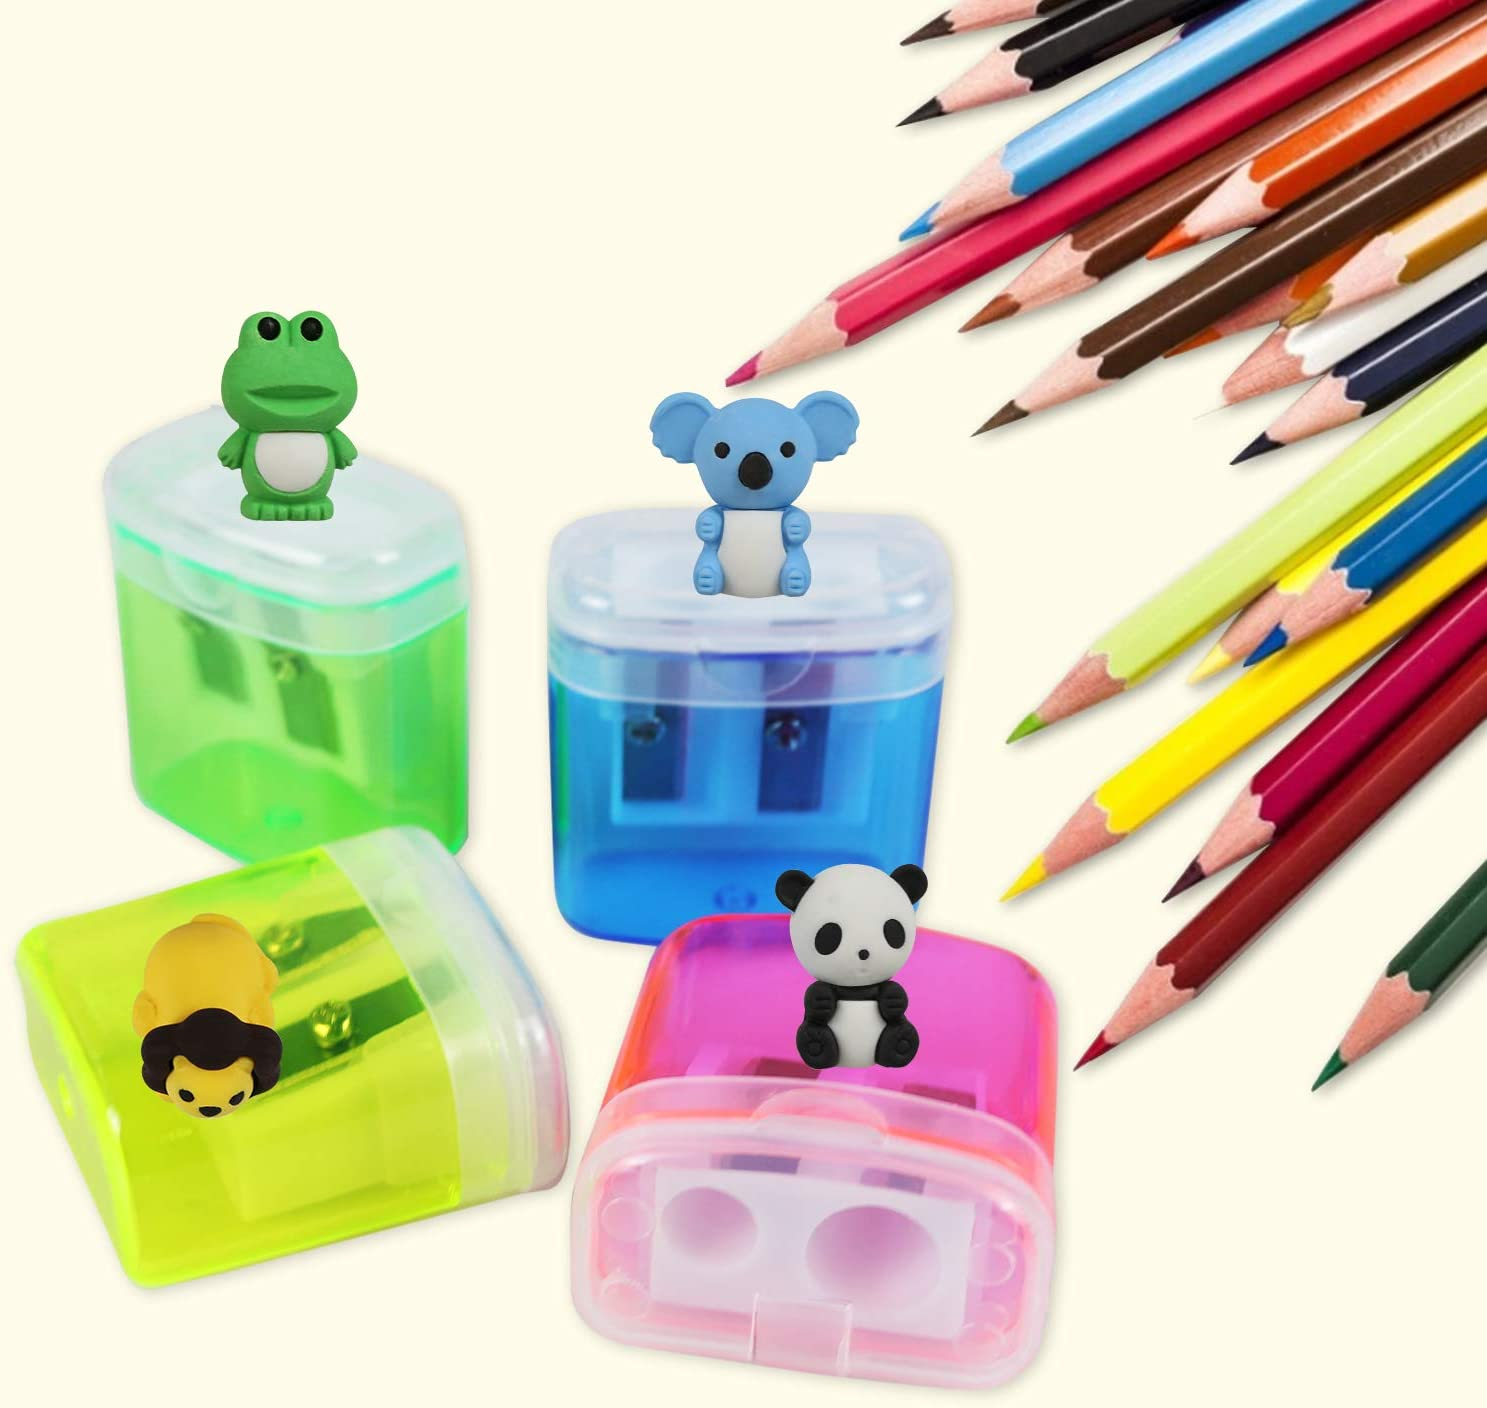 24 Pack Double Hole Pencil Sharpener 4 Colors Manual Pencil Sharpener with Lid and 4 PCS Animal Puzzle Eraser for Kids Gift School Office Home